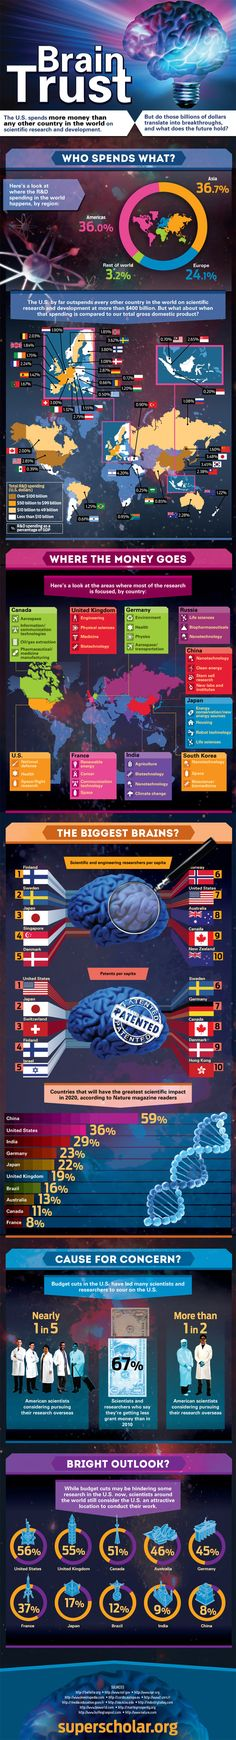 Scientific Research Spending by Country : This report with impressive illustrations presents a breakdown of the scientific research and development spending around the world and raises questions regarding the ROI of investing in brain.  > http://infographicsmania.com/scientific-research-spending-by-country/?utm_source=Pinterest&utm_medium=ZAKKAS&utm_campaign=SNAP